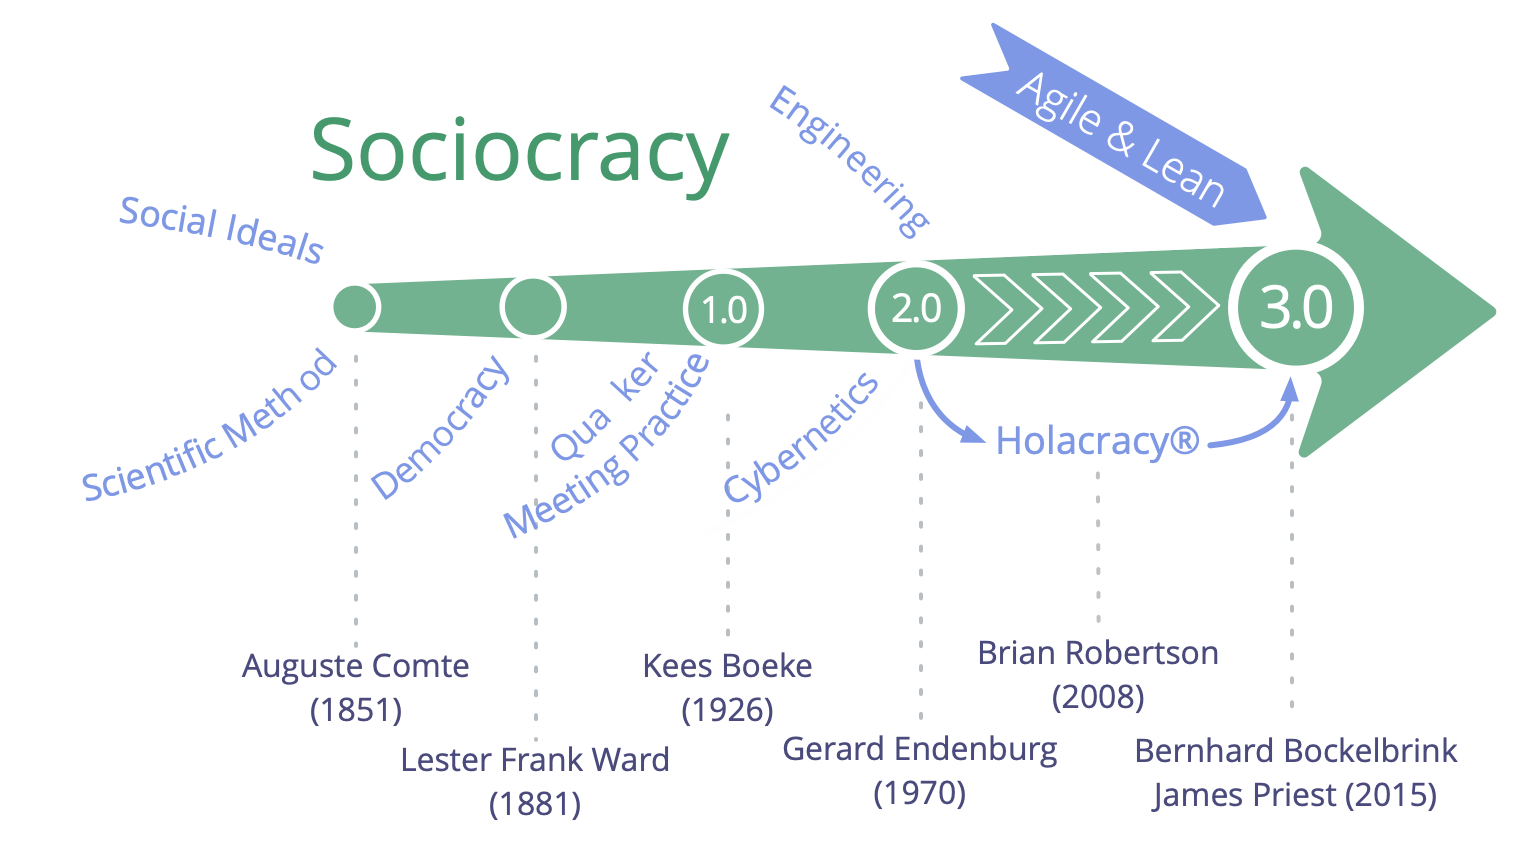 Influences and history of Sociocracy 3.0